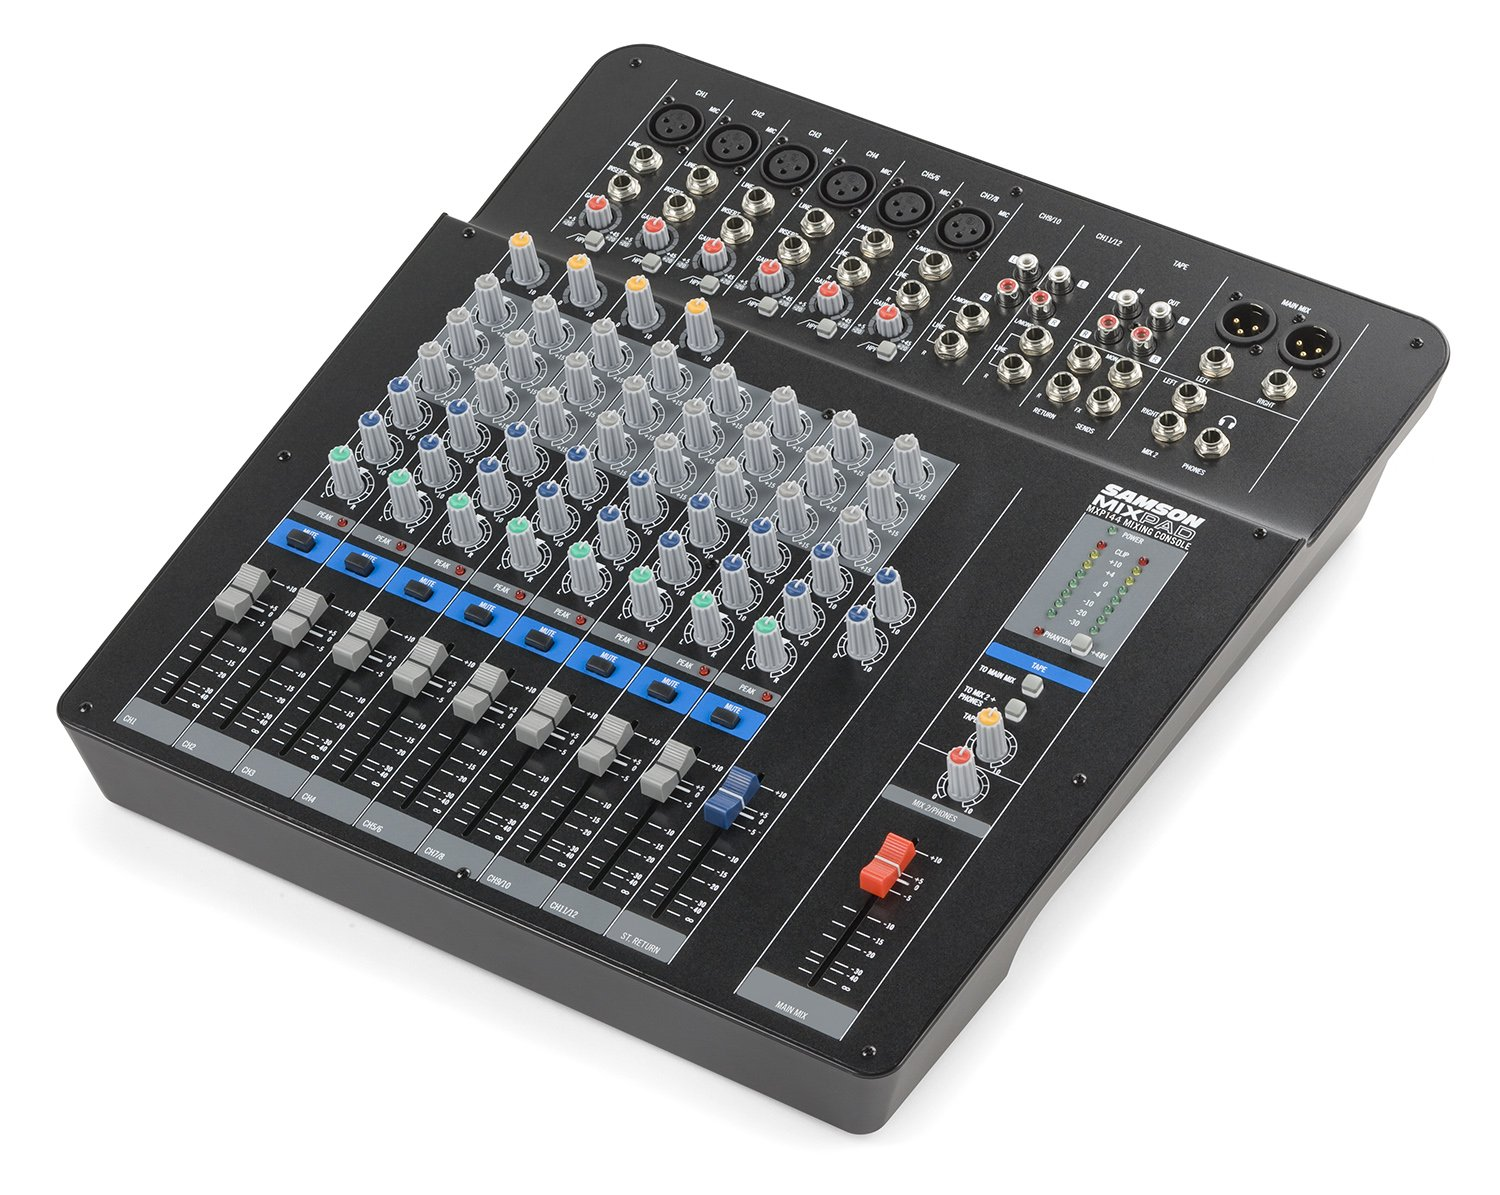 Samson Mixpad MXP124FX 12-Channel USB Mixer with Digital Effects Samson Audio SAMXP124FX